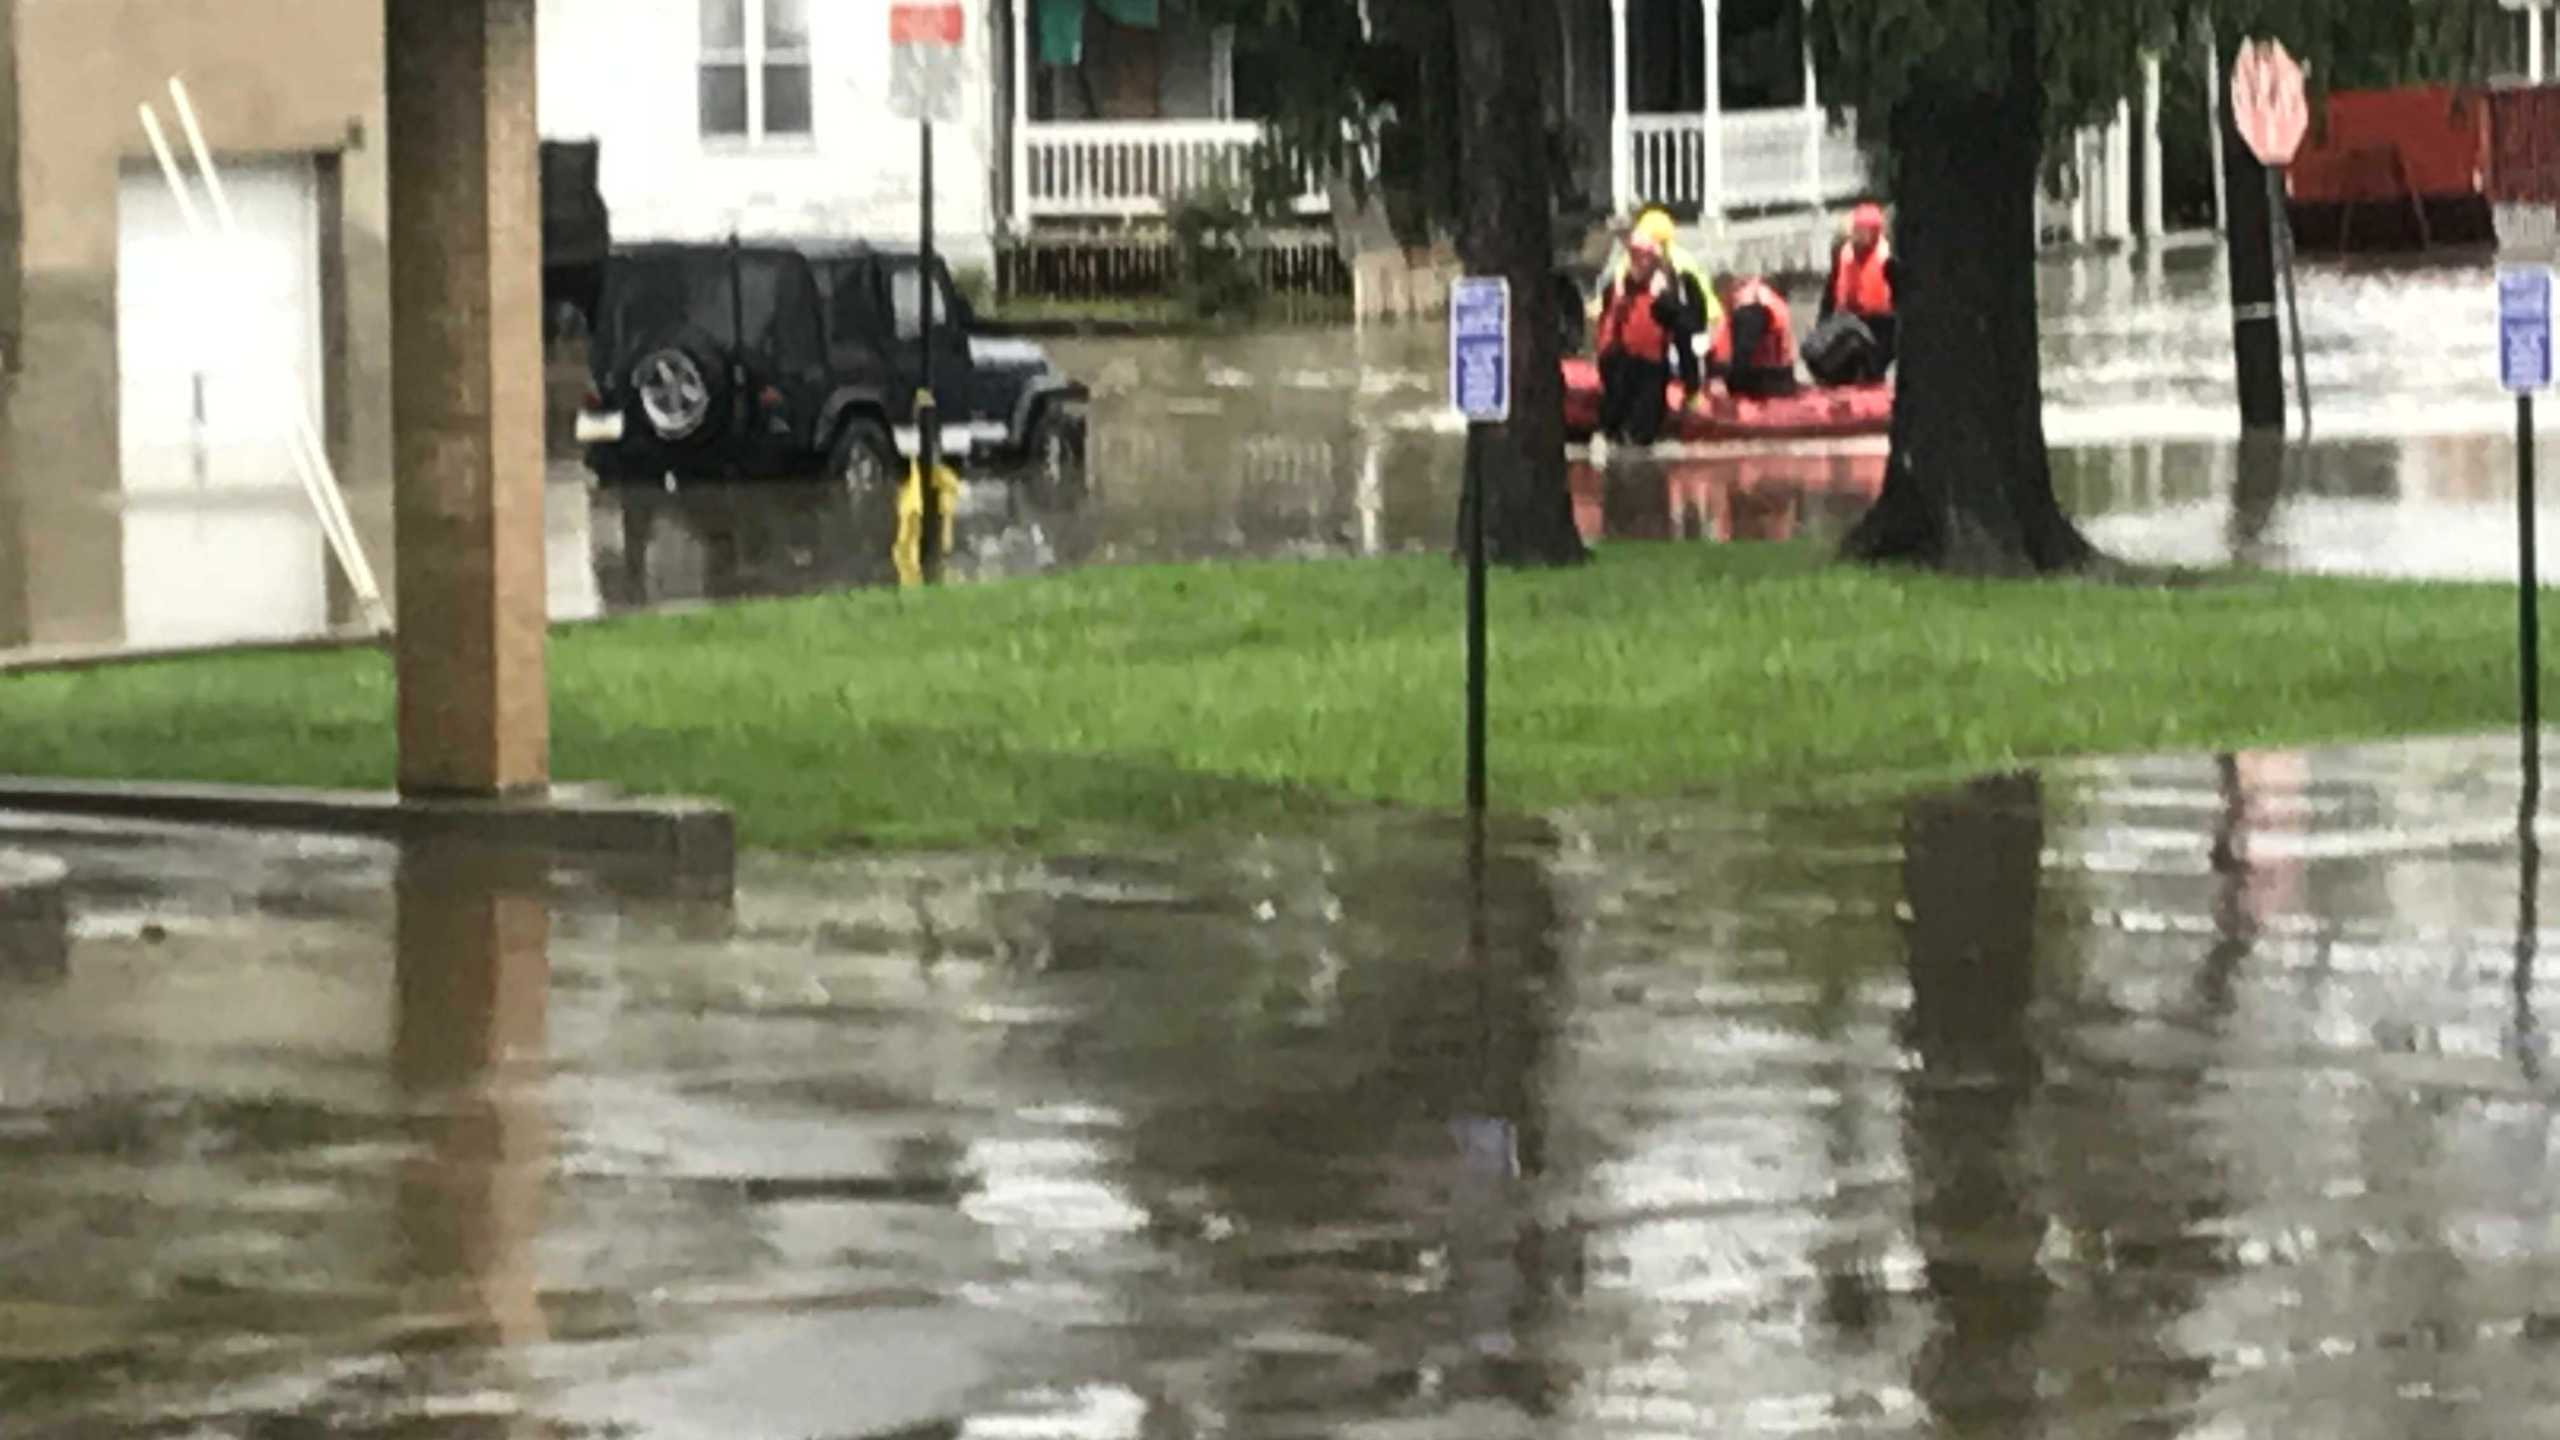 Widespread flooding reported across Central and NE Pennsylvania Monday